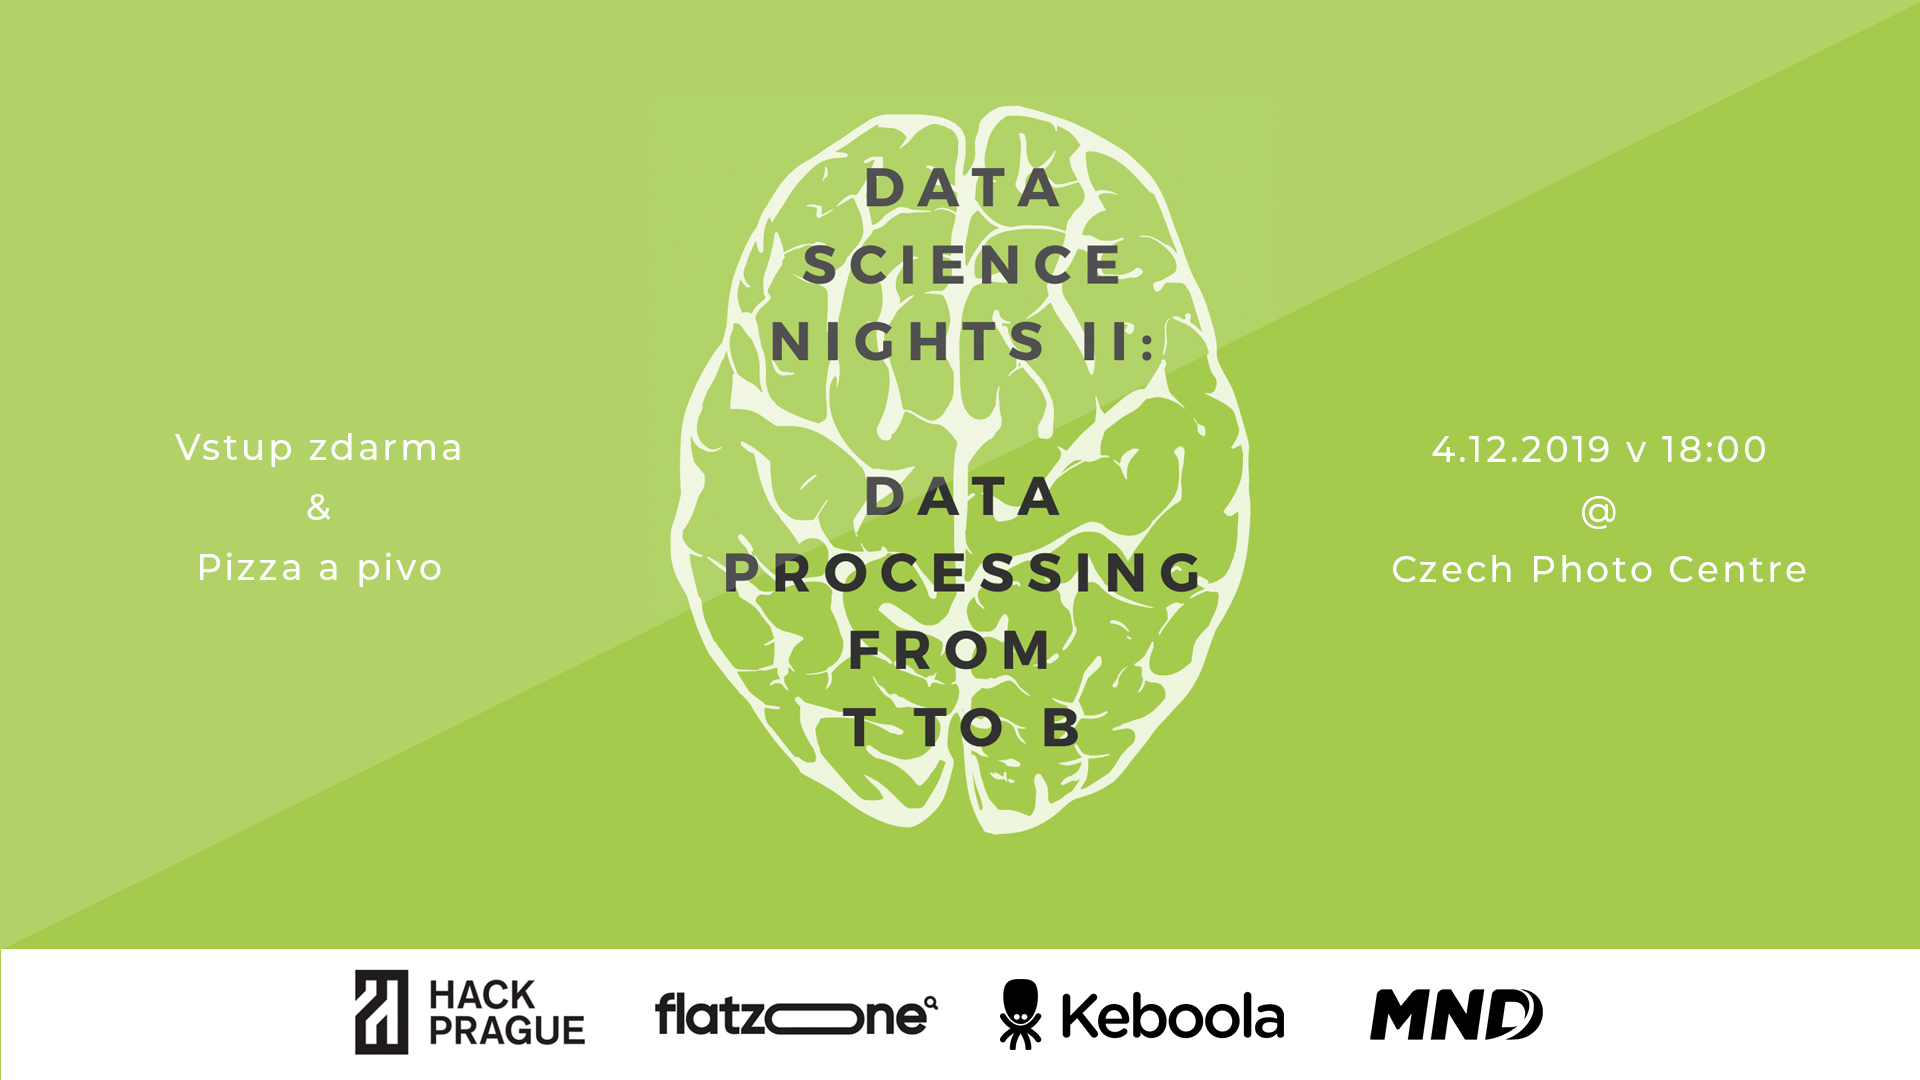 Data Scinece Nights II